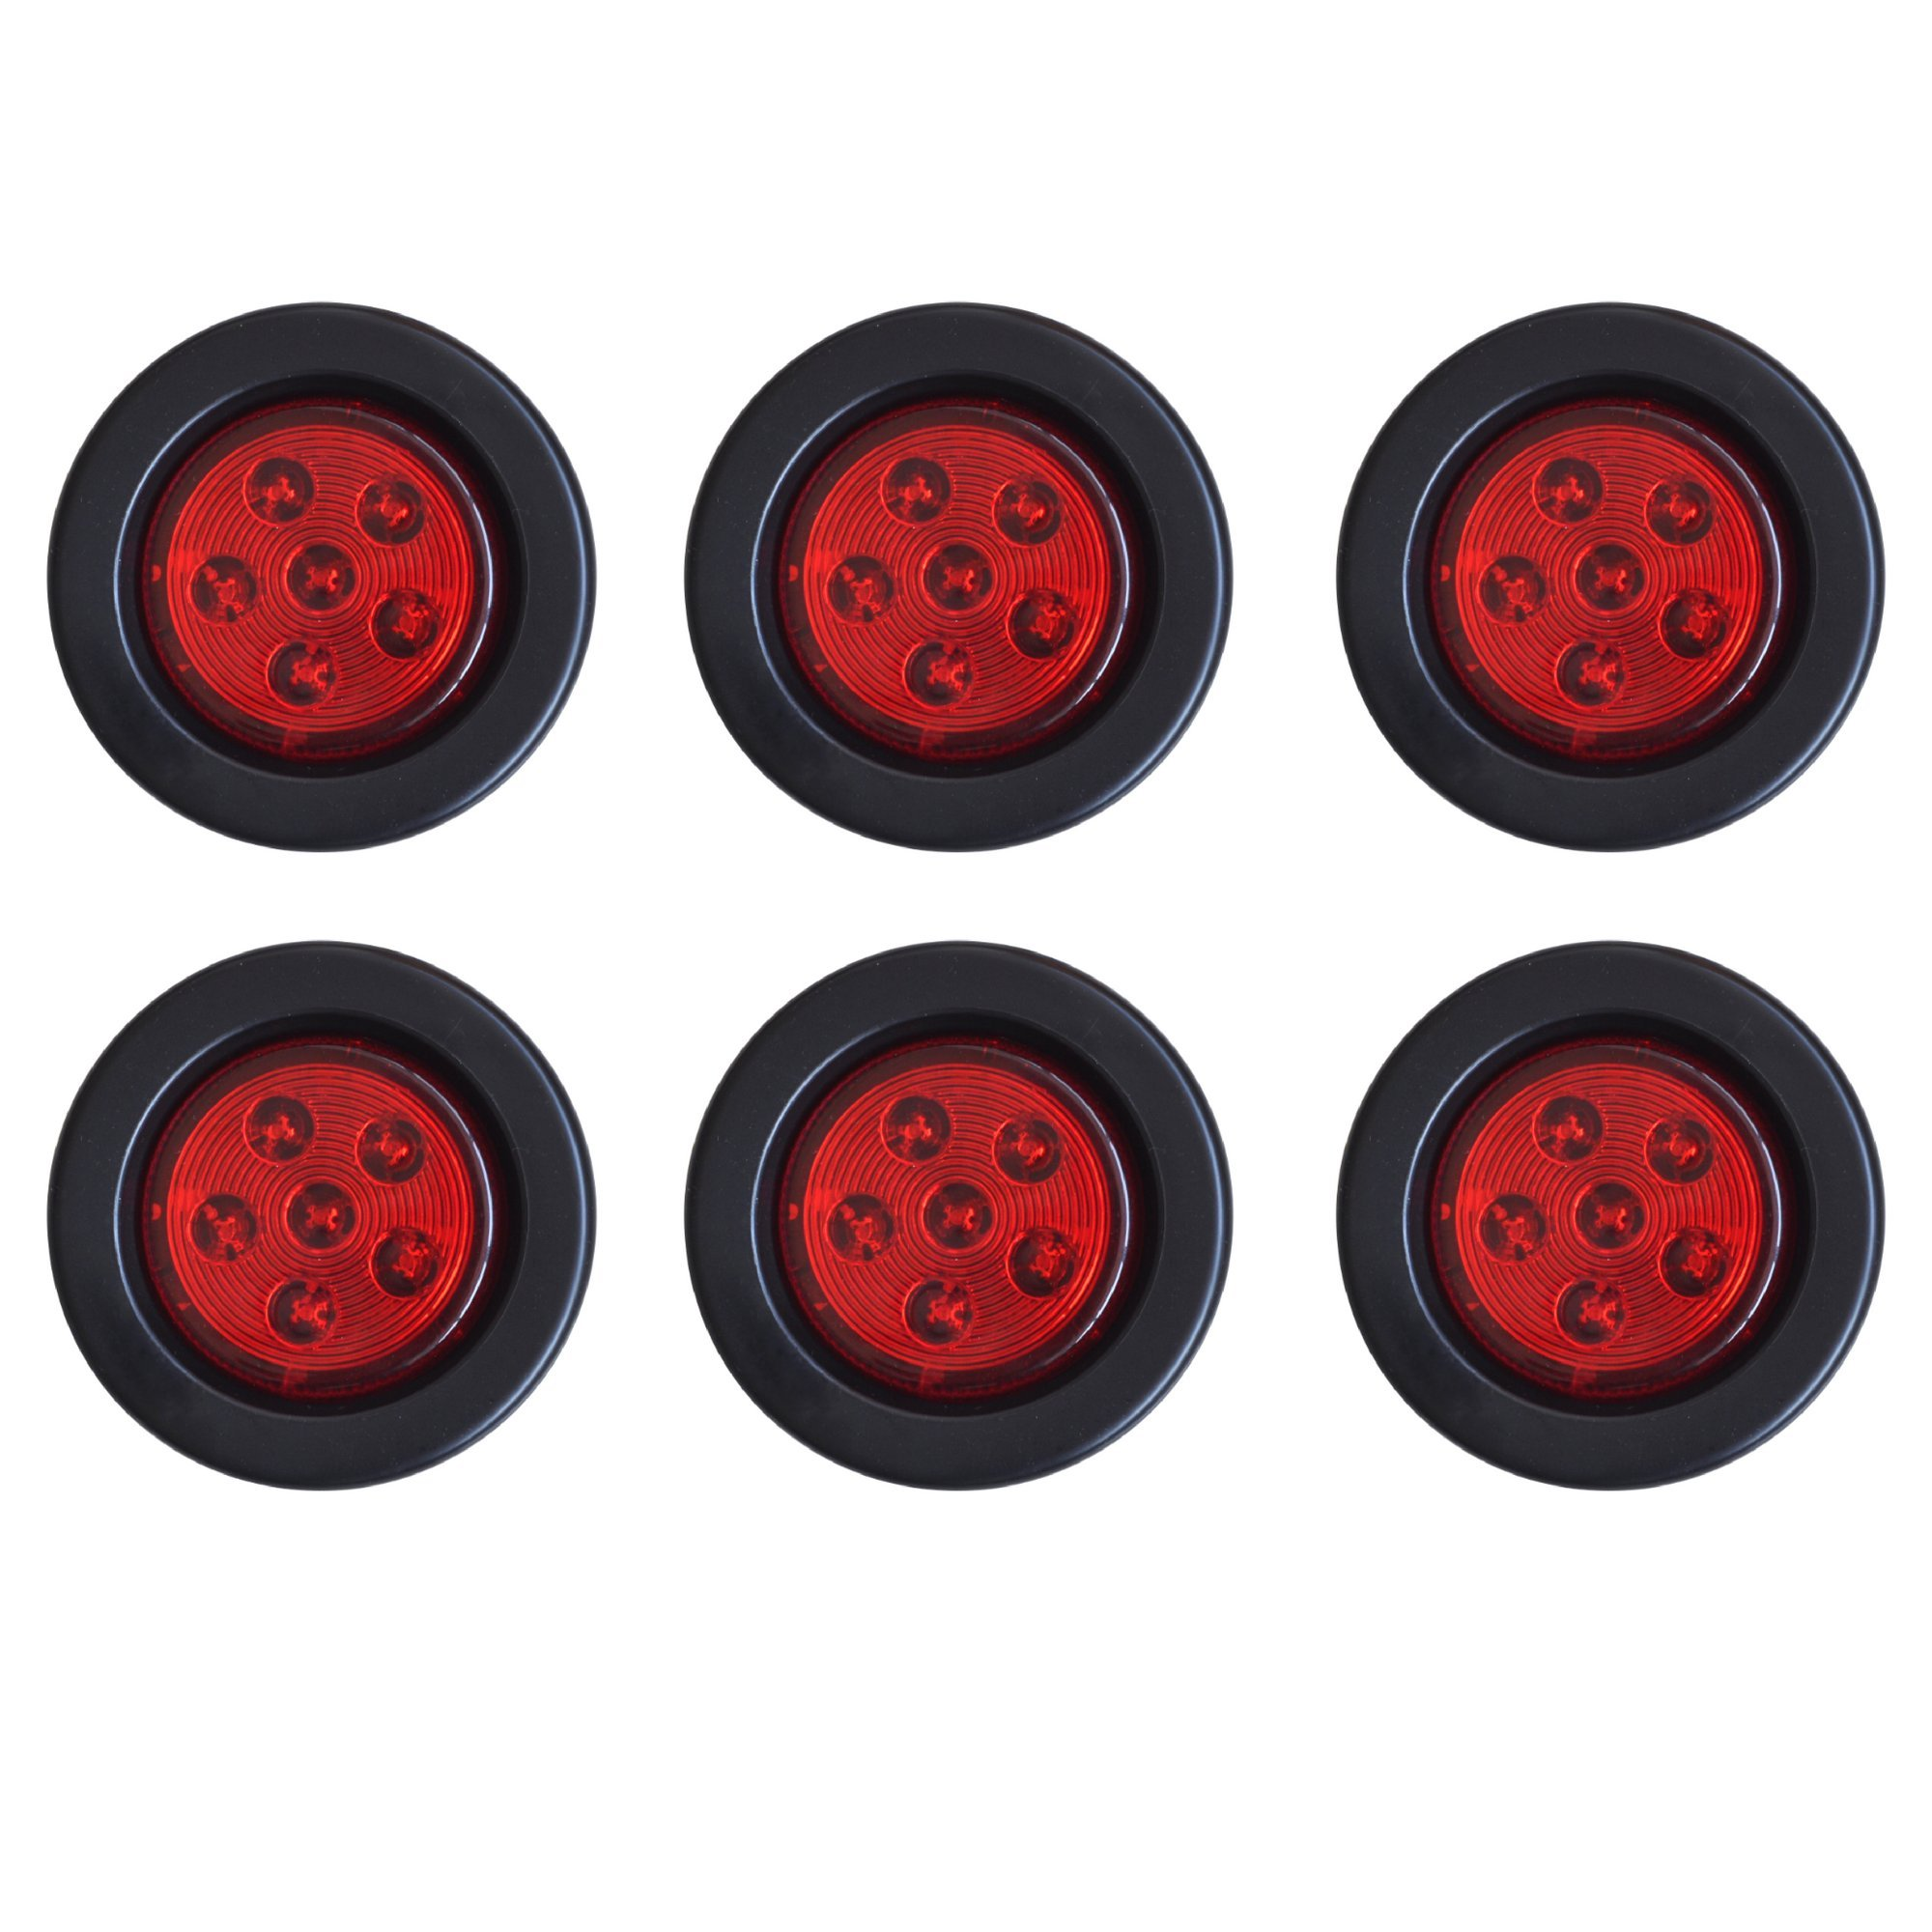 Qty 6-2.5'' Round 6 LED Red Light Truck Trailer Side Marker Clearance Grommet and 2 Wire Pigtail Plug Kit